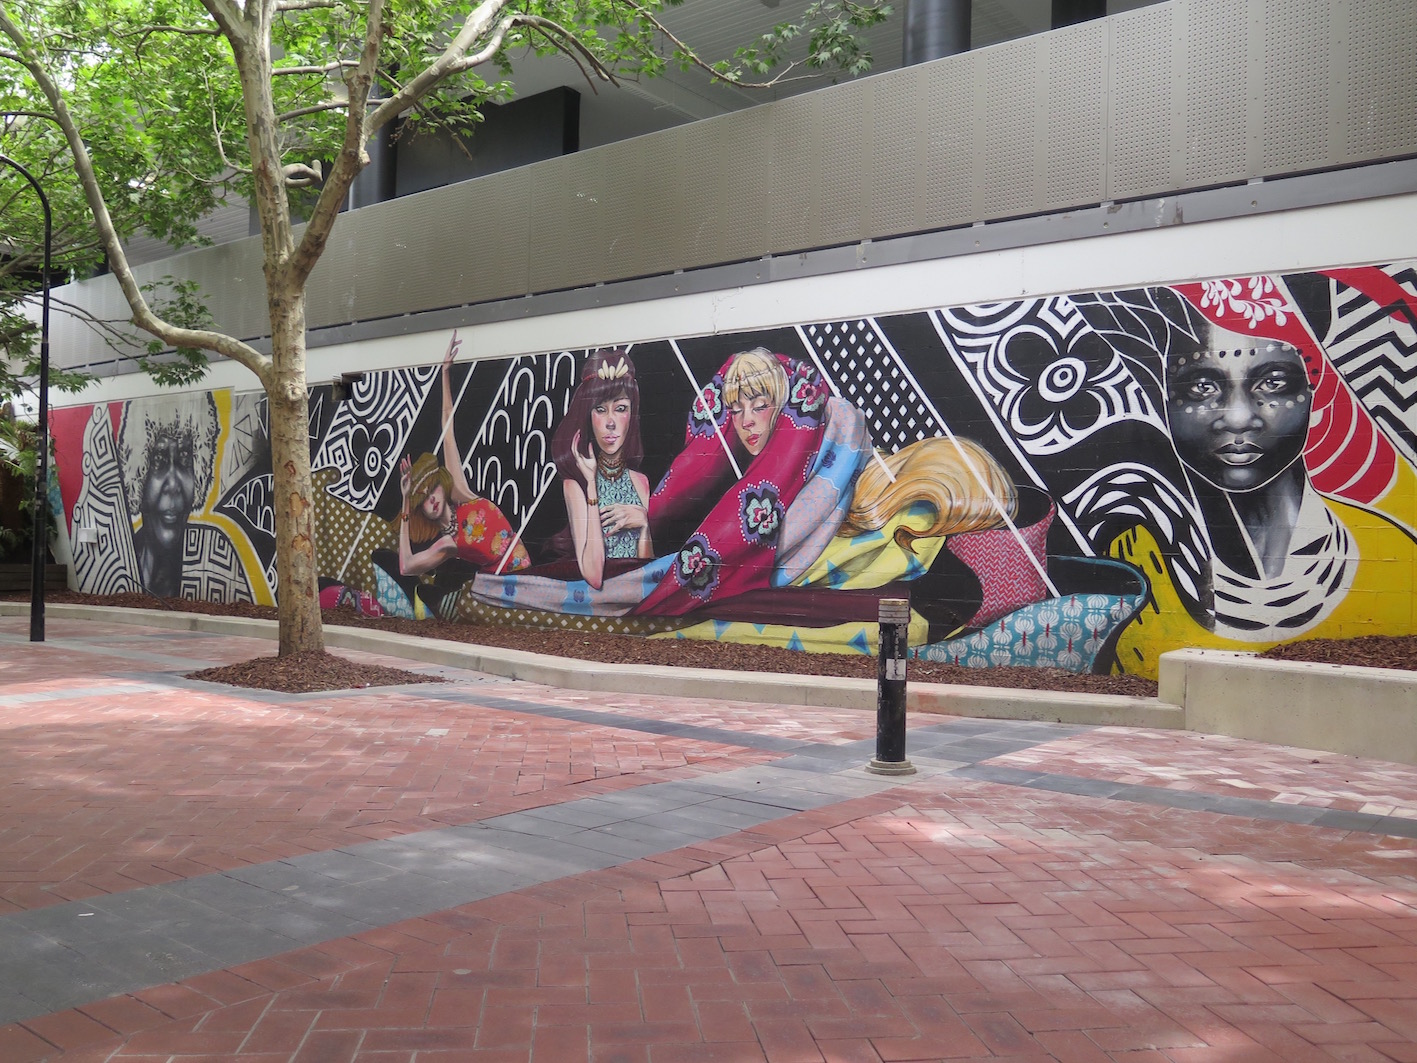 deansunshine_landofsunshine_melbourne_streetart_graffiti_eastland urban art project 6 lucy lucy shannons crees collab 1